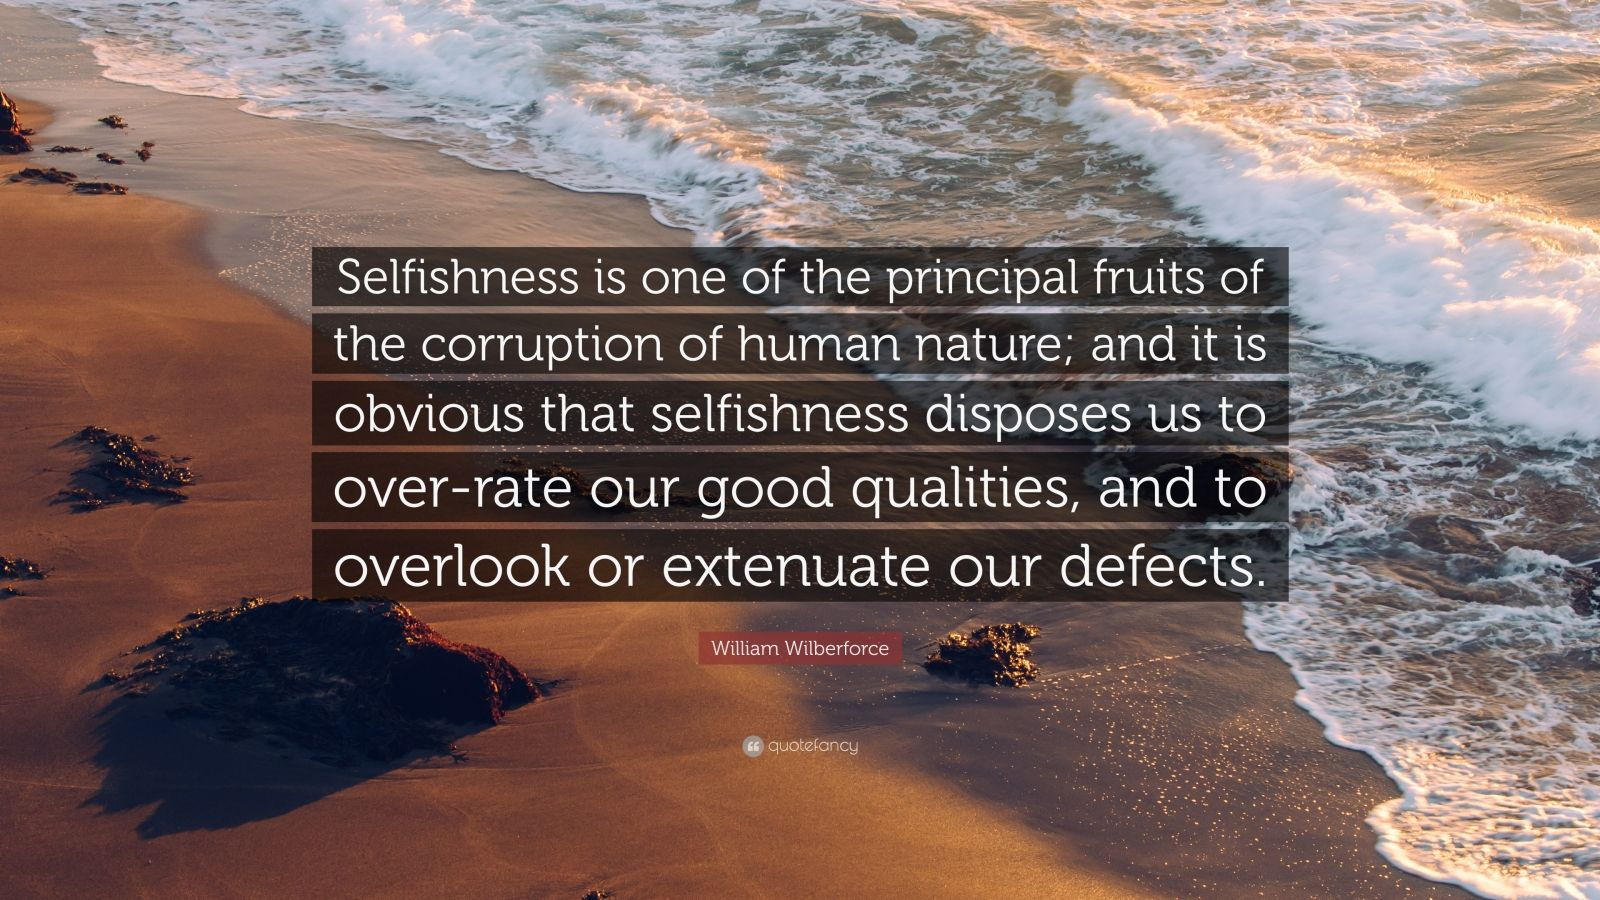 """William Wilberforce Quote: """"Selfishness is one of the principal fruits of the corruption of human nature; and it is obvious that selfishness disposes us to over-rate our good qualities, and to overlook or extenuate our defects."""""""